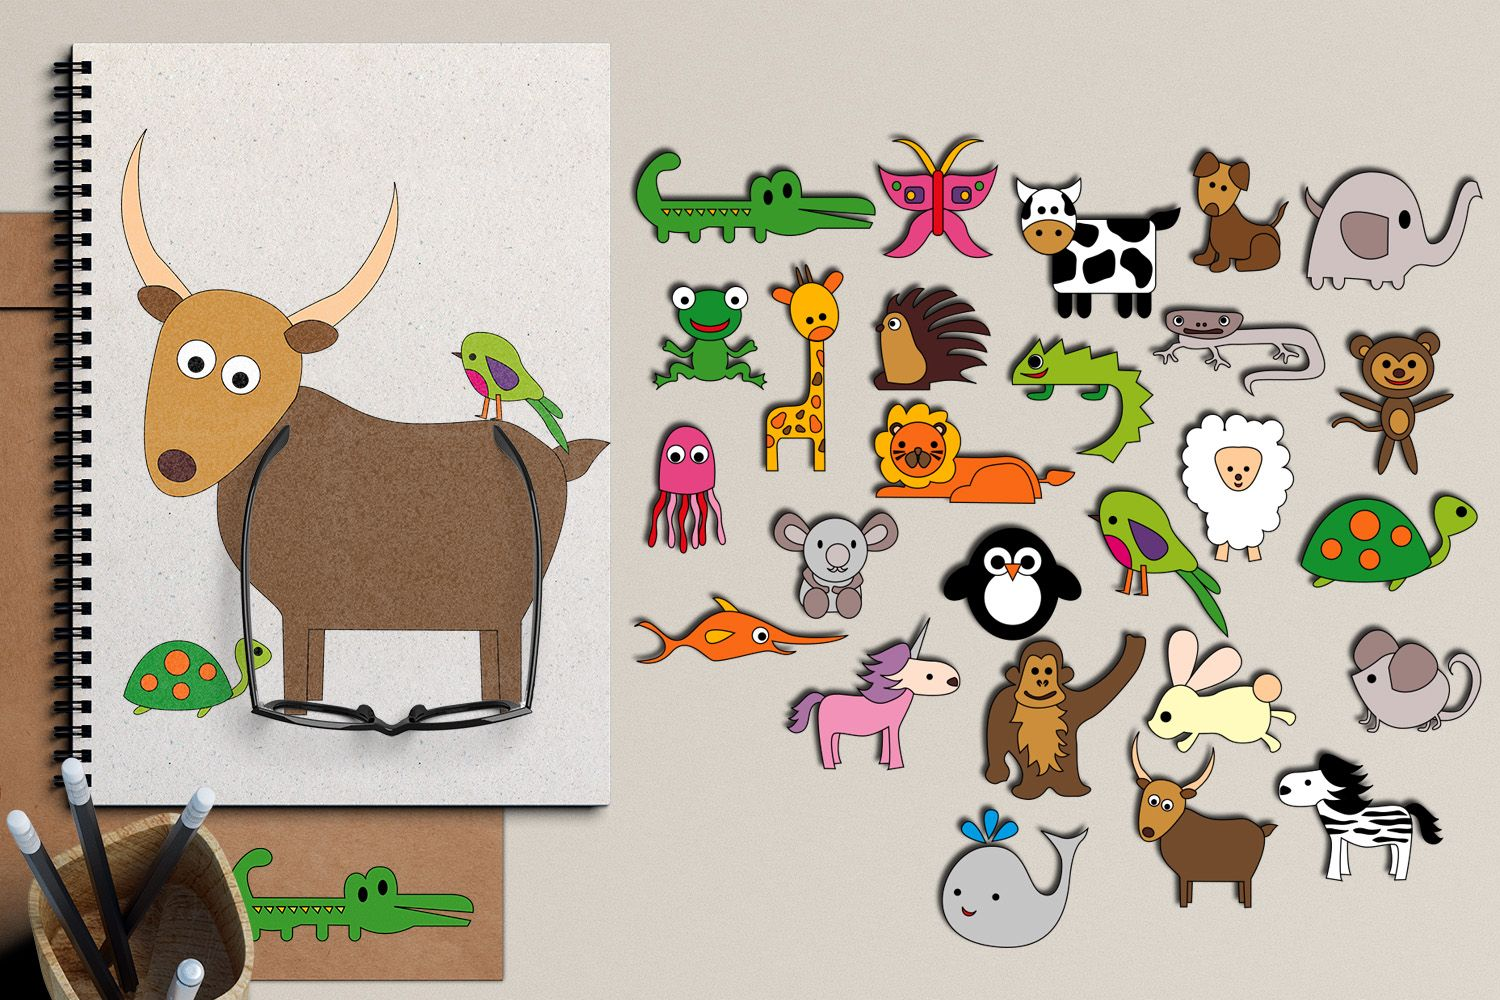 Alphabet Animals Graphic By Revidevi Creative Fabrica Alphabet Illustration Graphic Illustration Animal Graphic